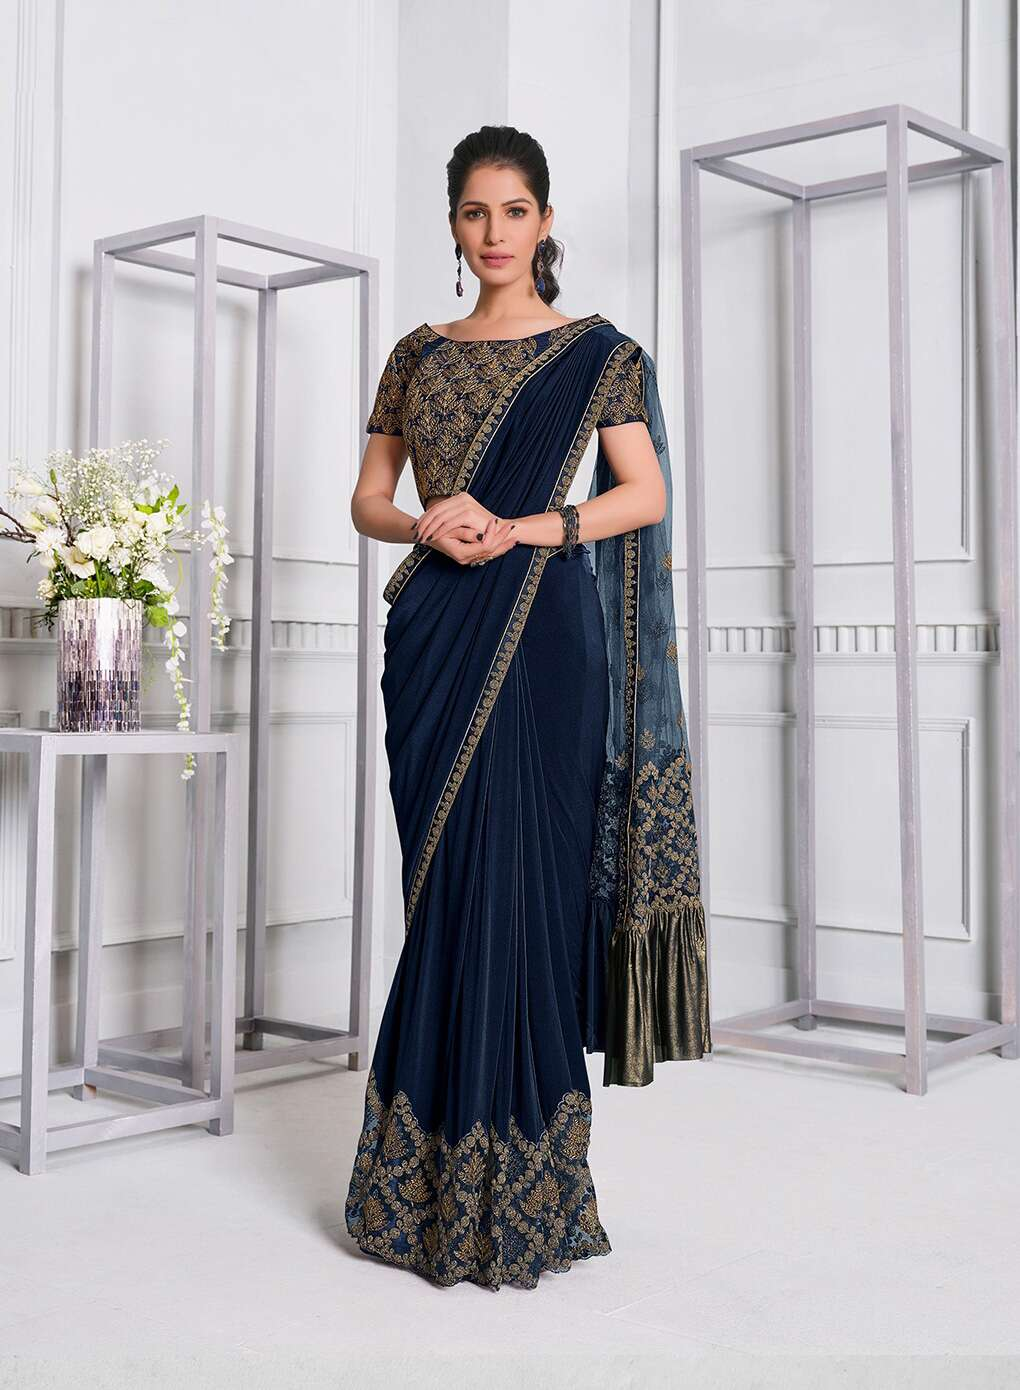 Party Wear Sarees With Latest Designer Blouse